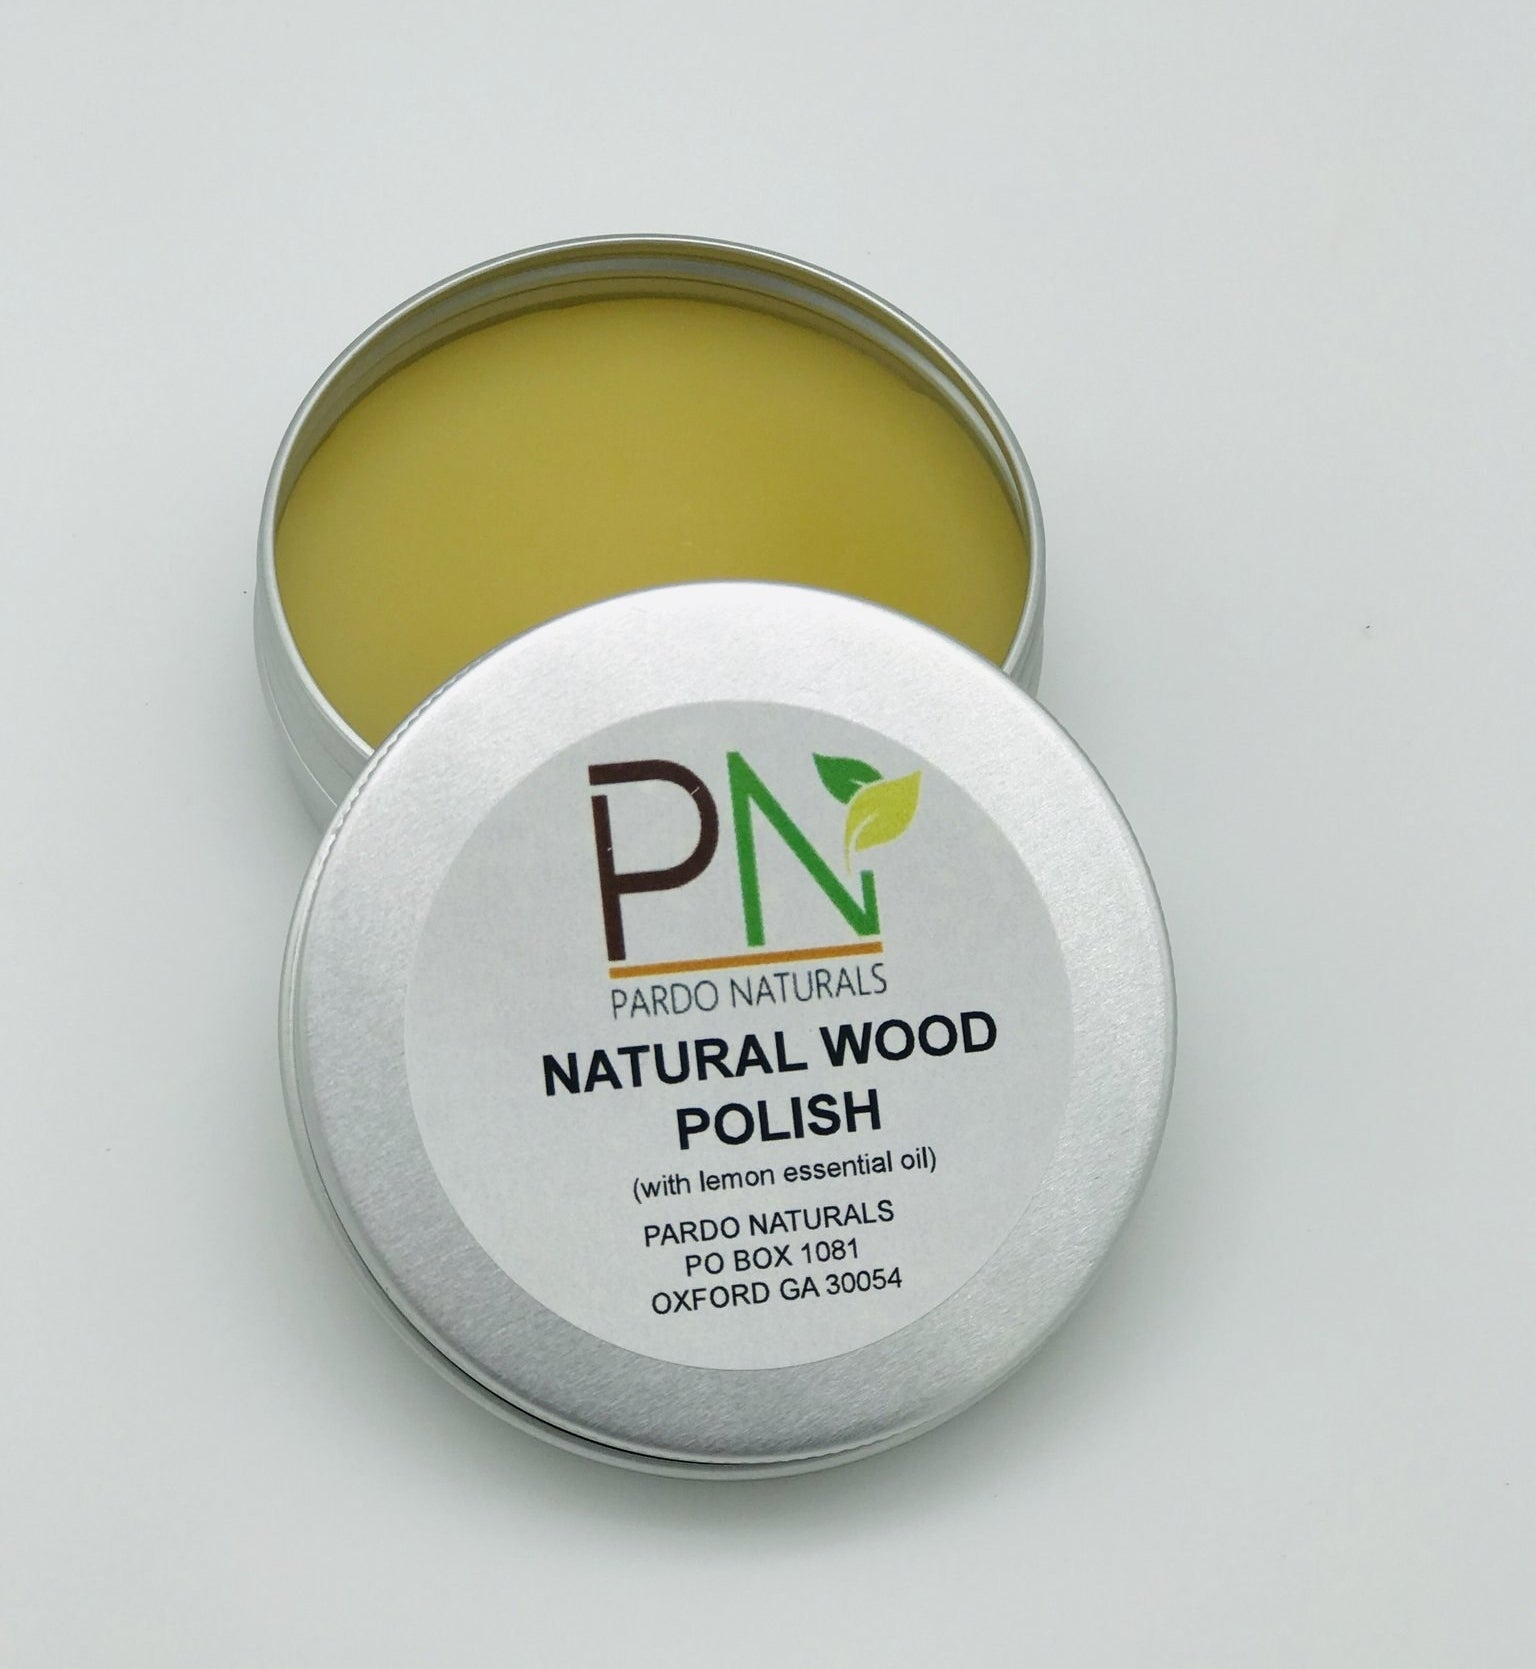 a tin of natural wood polish from pardo naturals